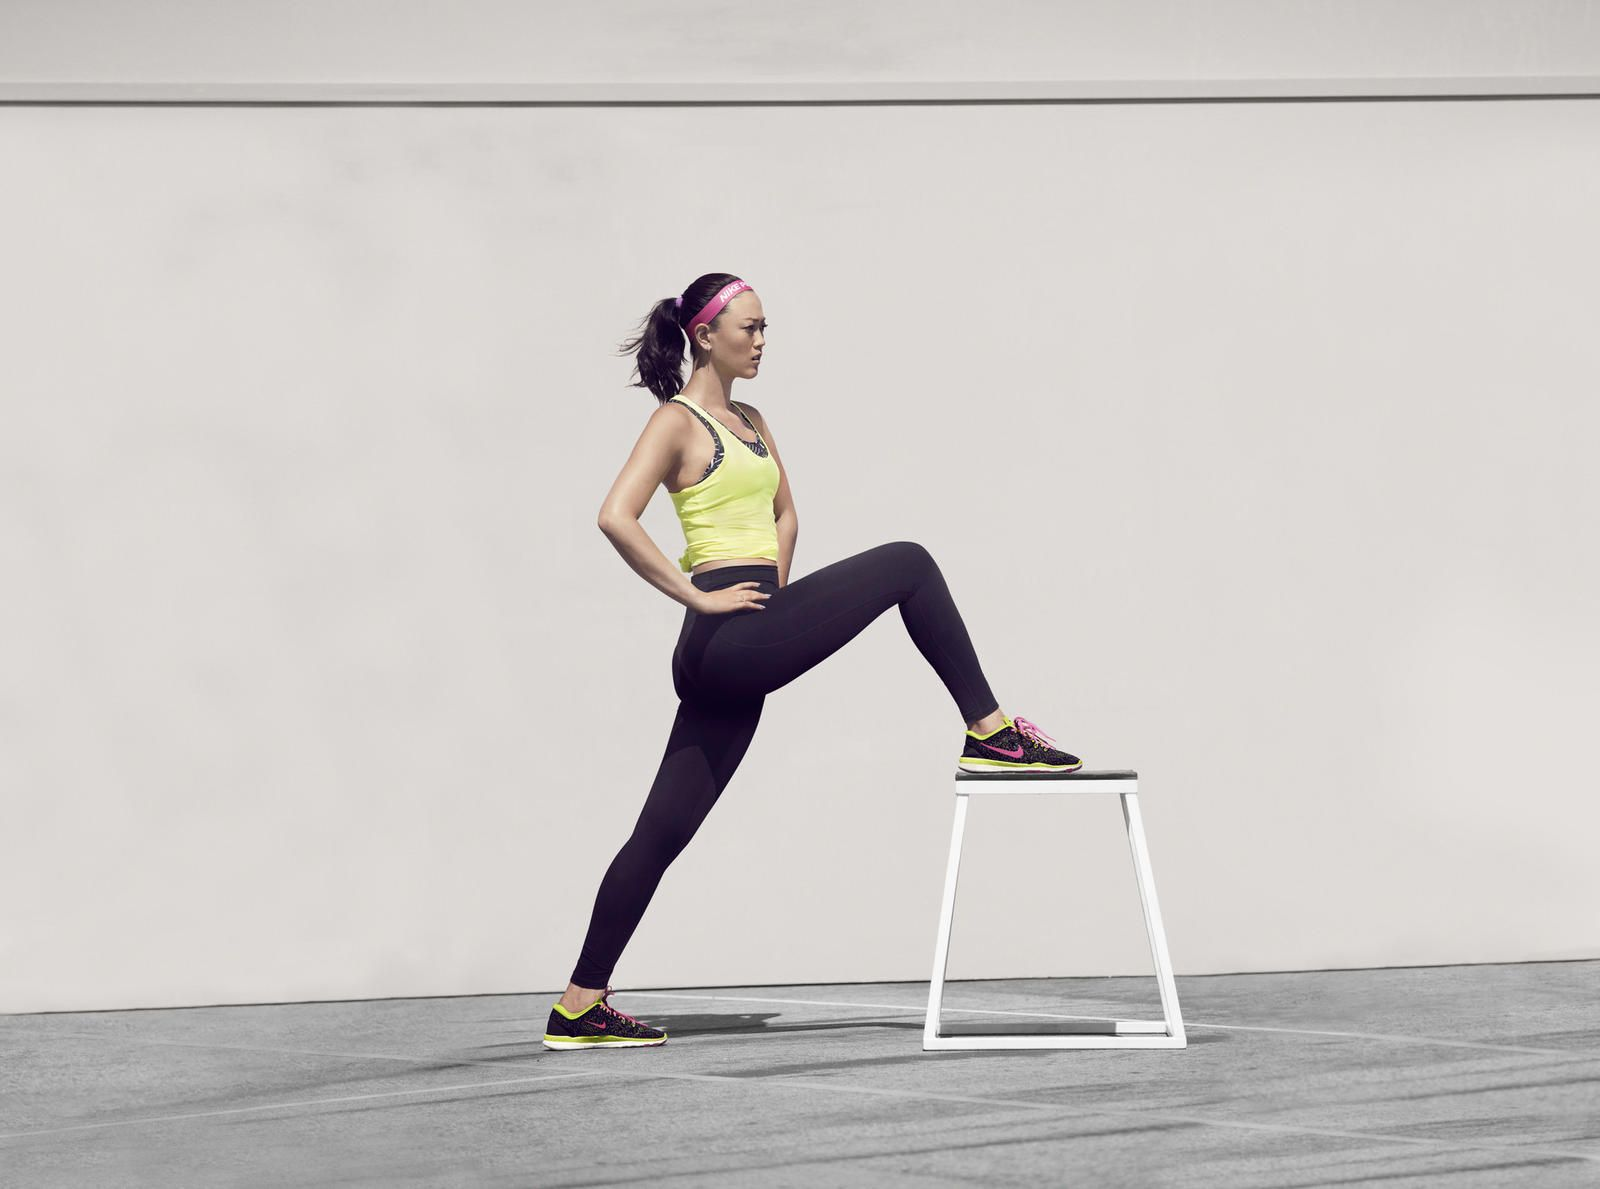 Nike News - Training Gets Personal with Michelle Wie: The Nike Free TR 5 on